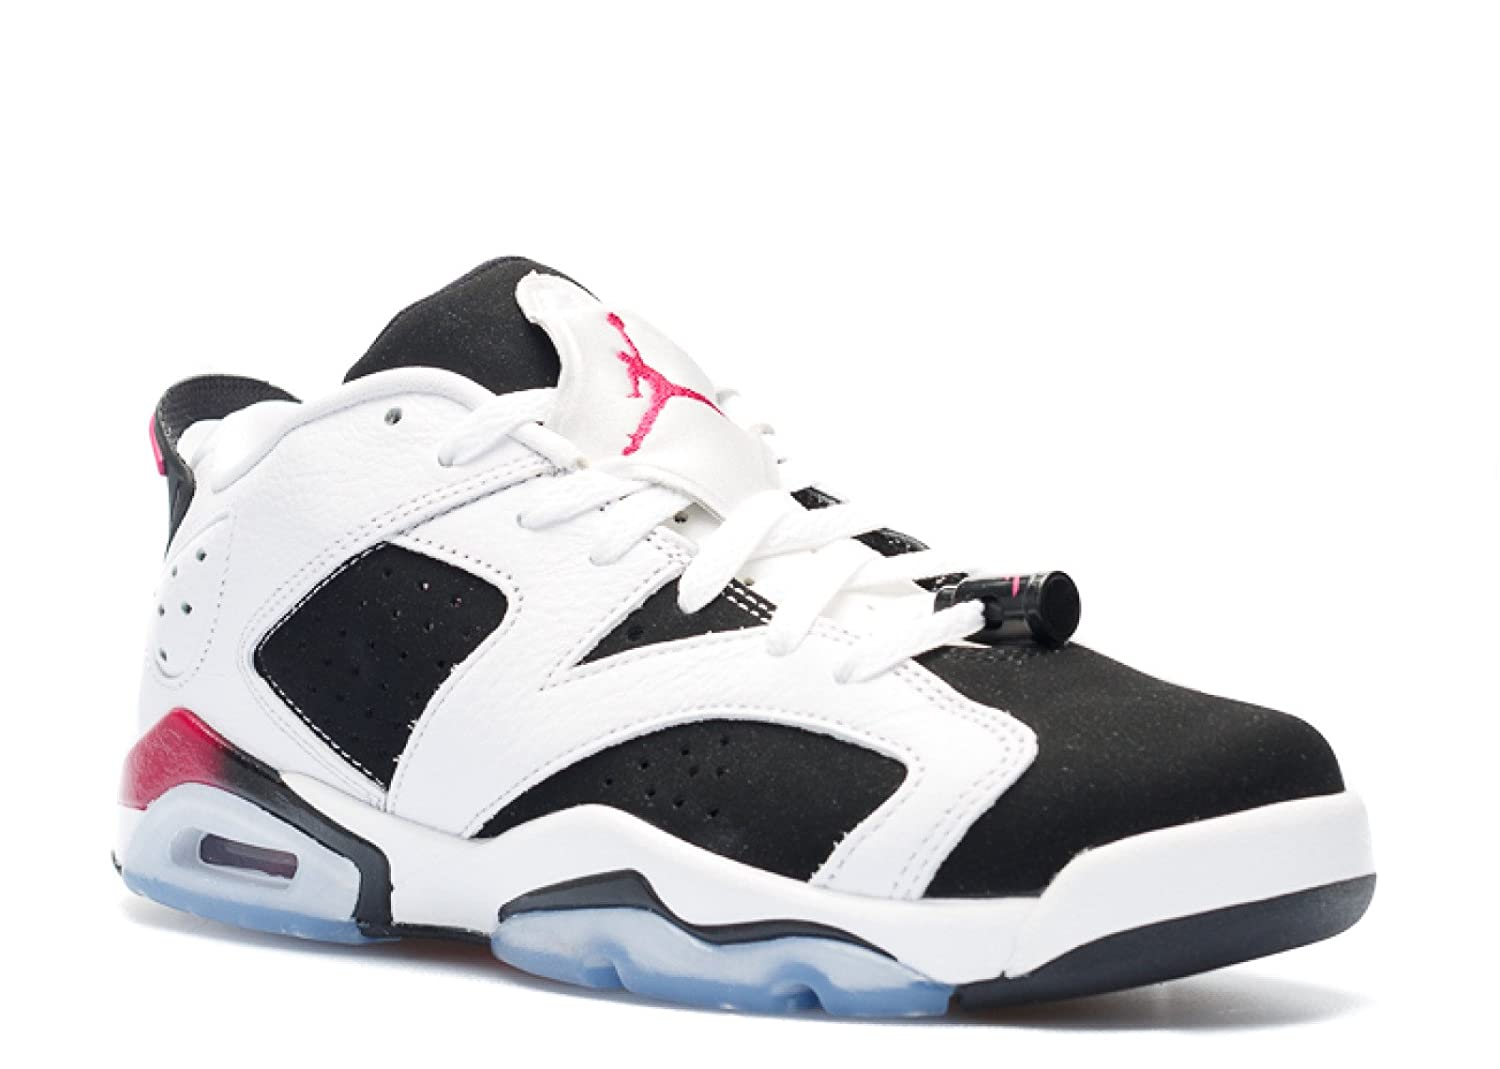 58f0ea3e6a3e2 Nike Air Jordan 6 Retro Low GG, Youth Basketball Shoes, White/Sport Fuchsia  - Black